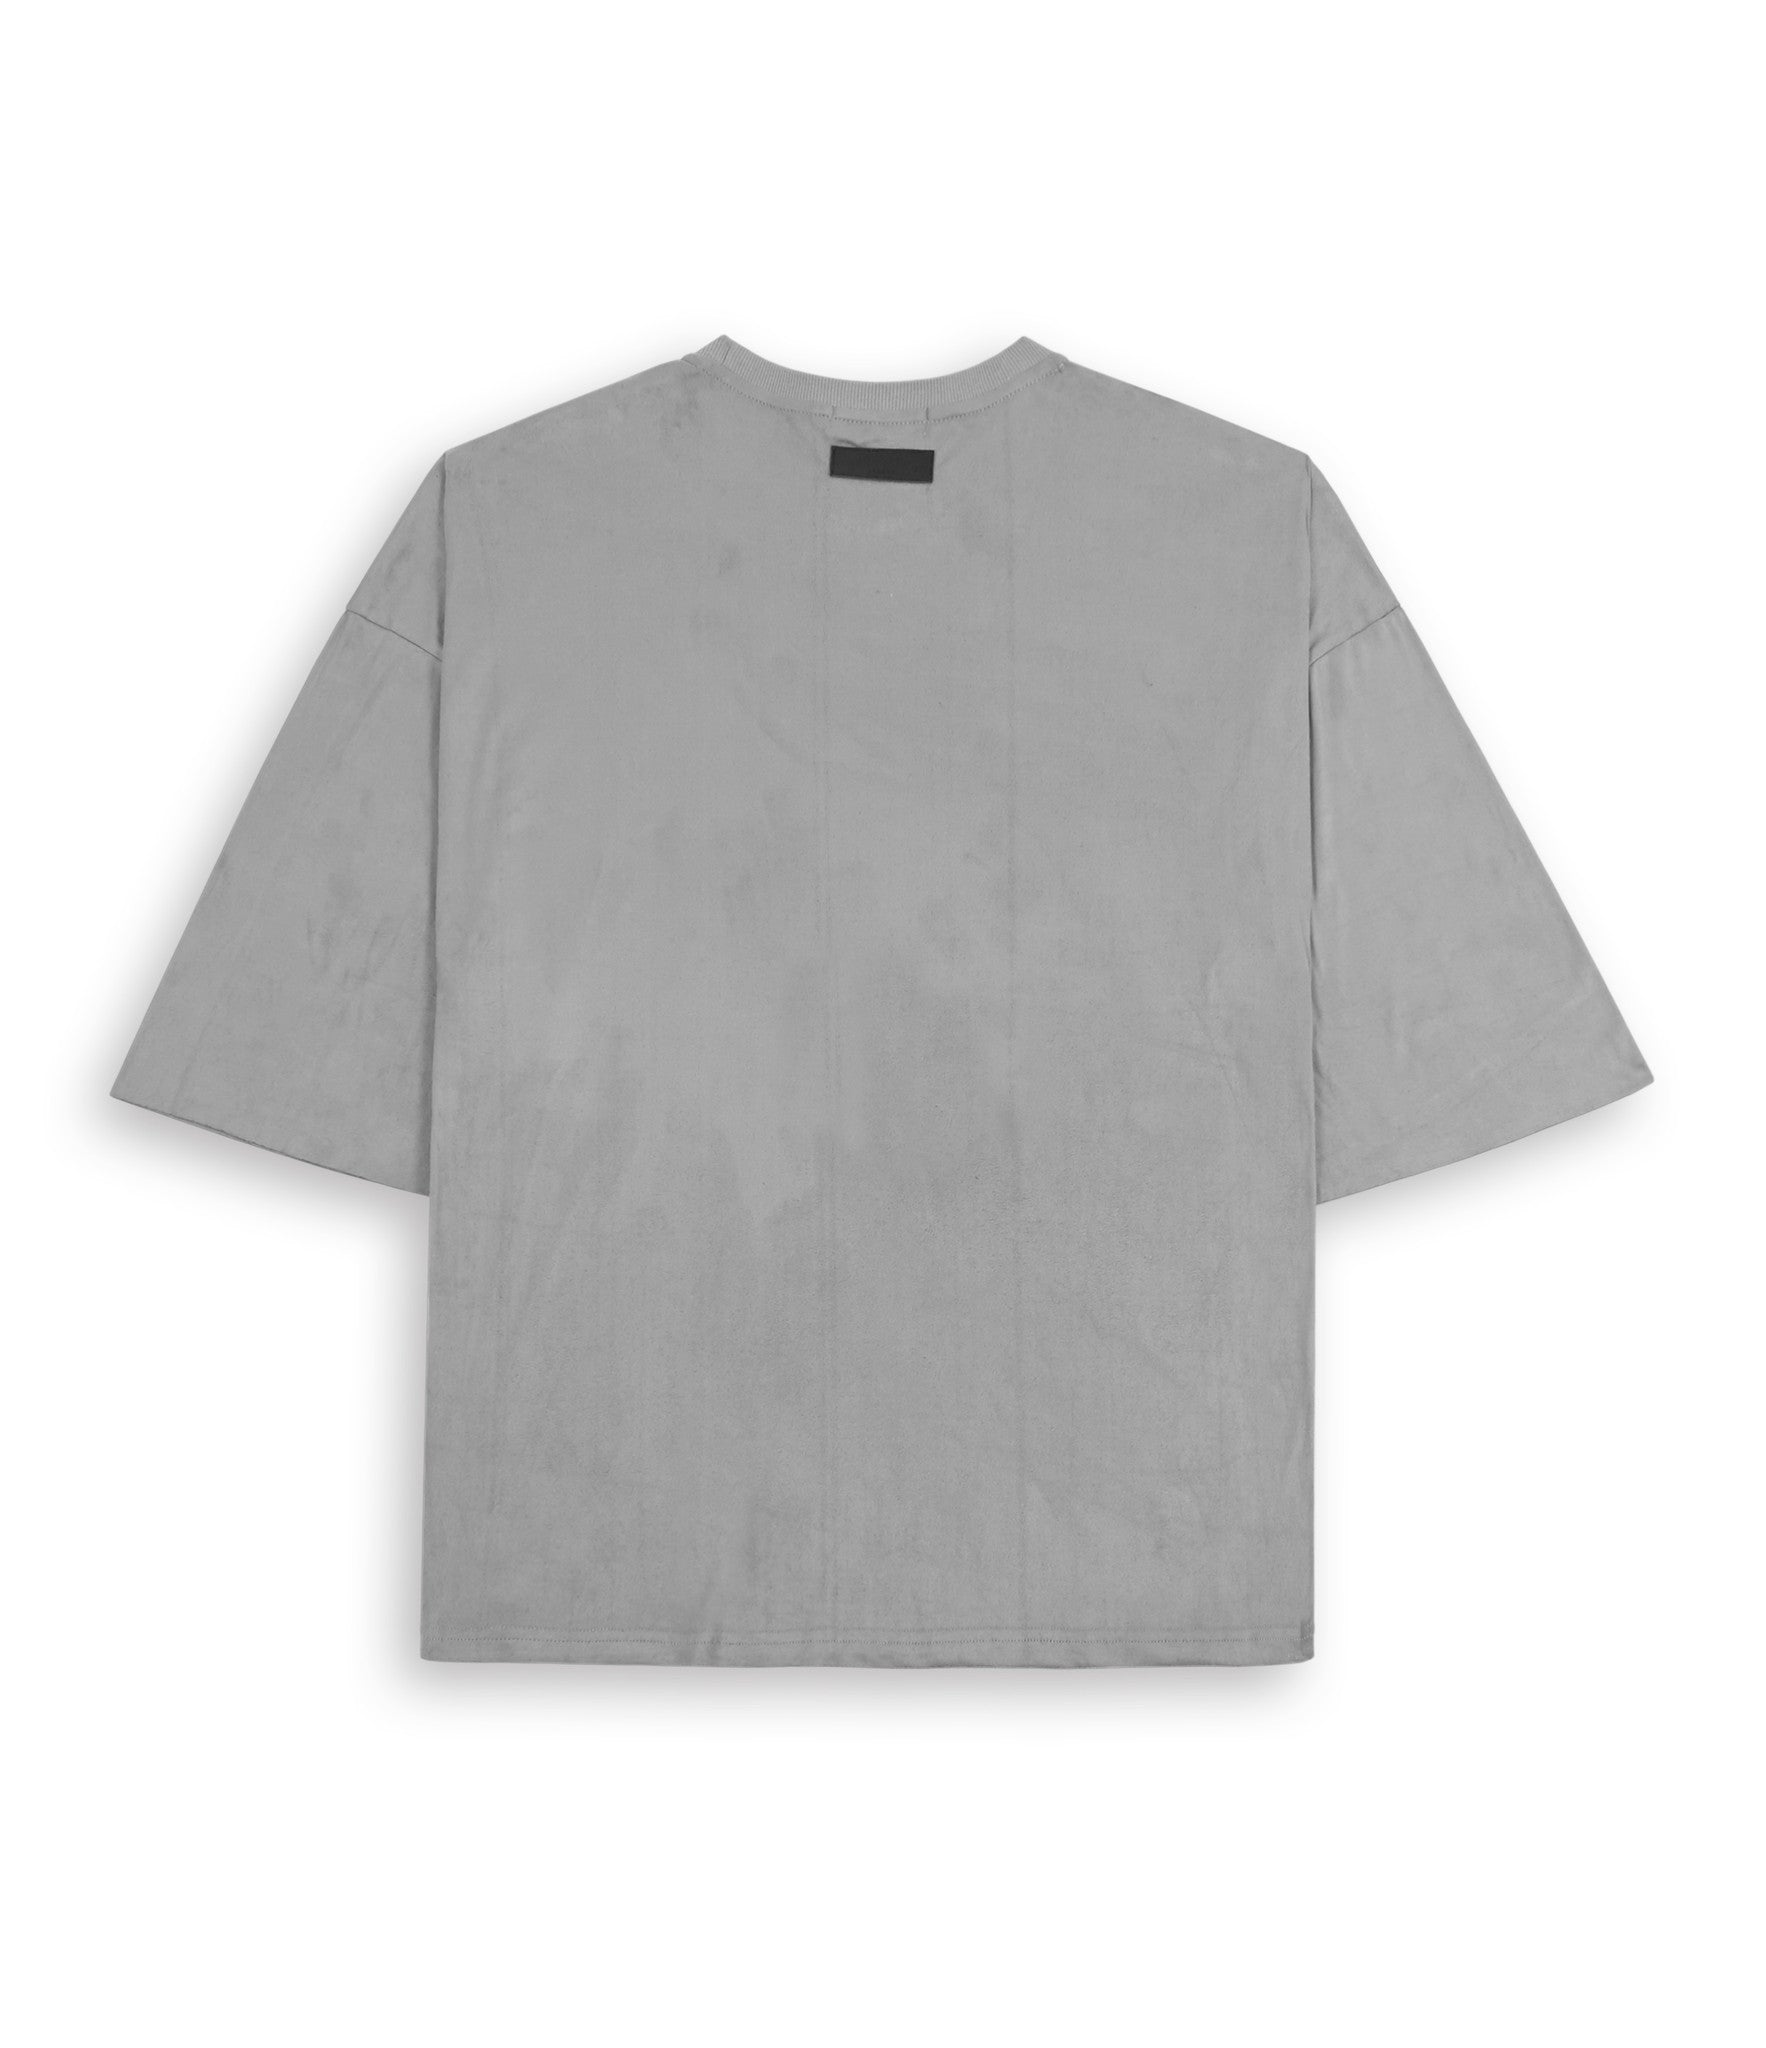 TS302 Suede Oversized Box Tee - Smokey Grey - underated london - underatedco - 3